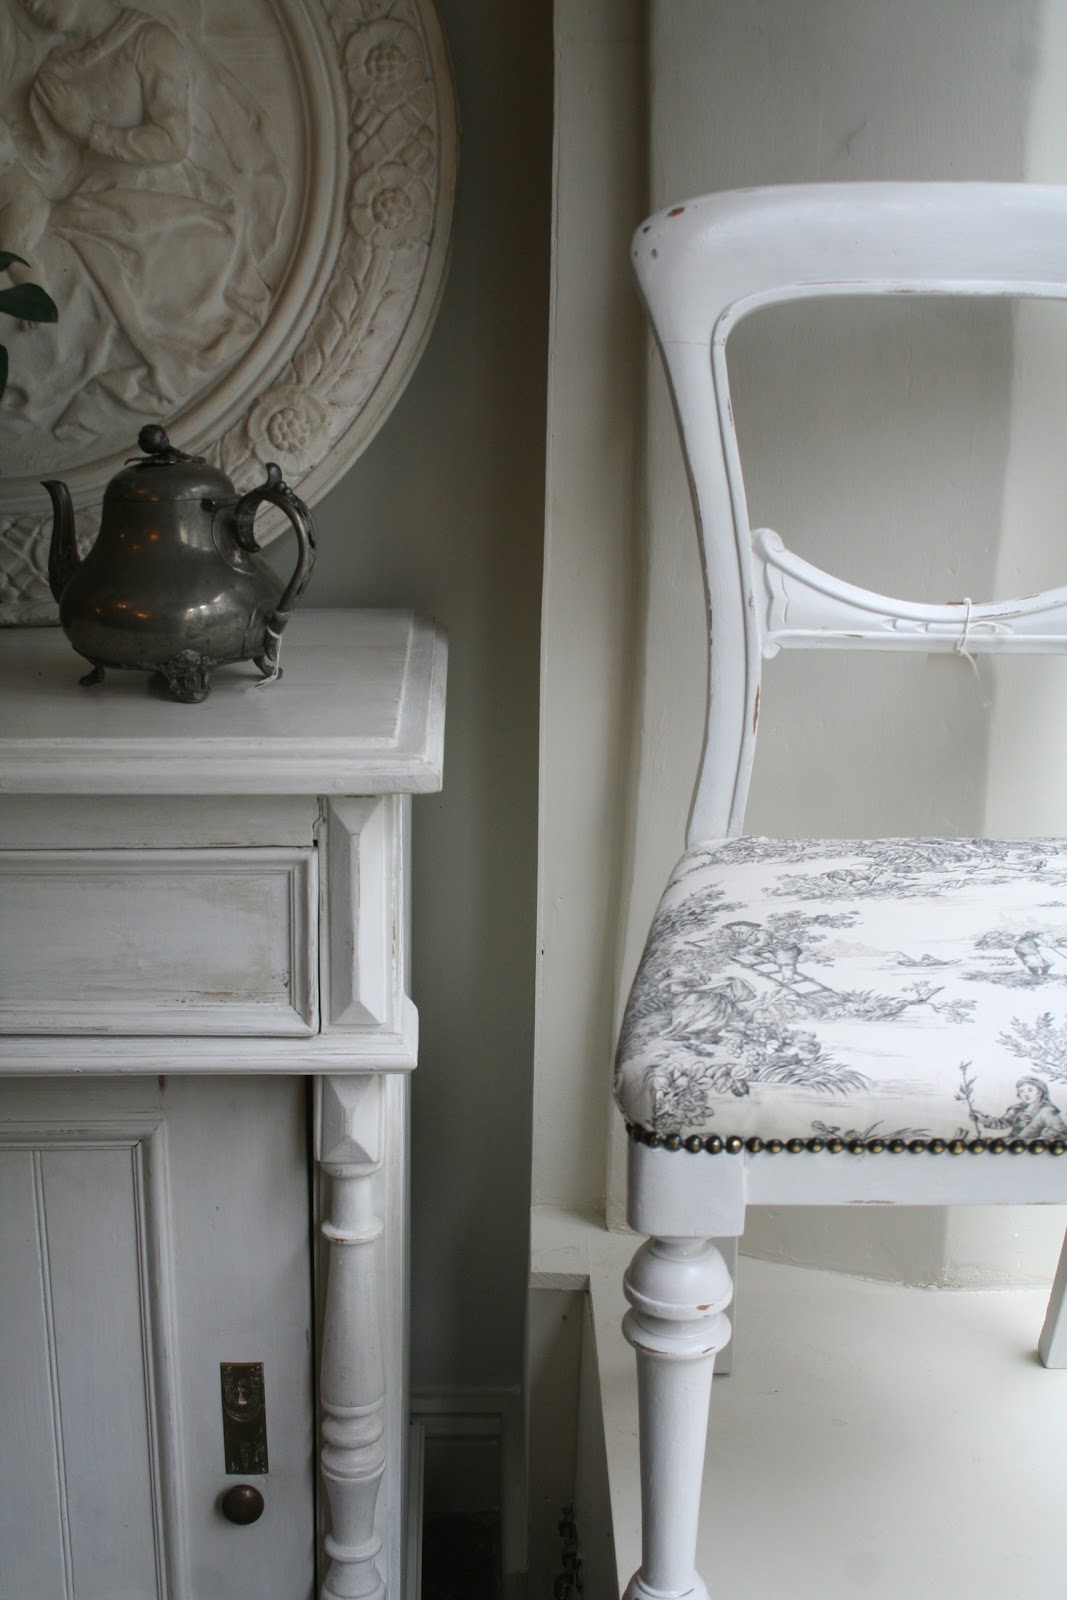 Neutral heaven interior design and mood creation grey toile de jouy Lime washed bedroom furniture